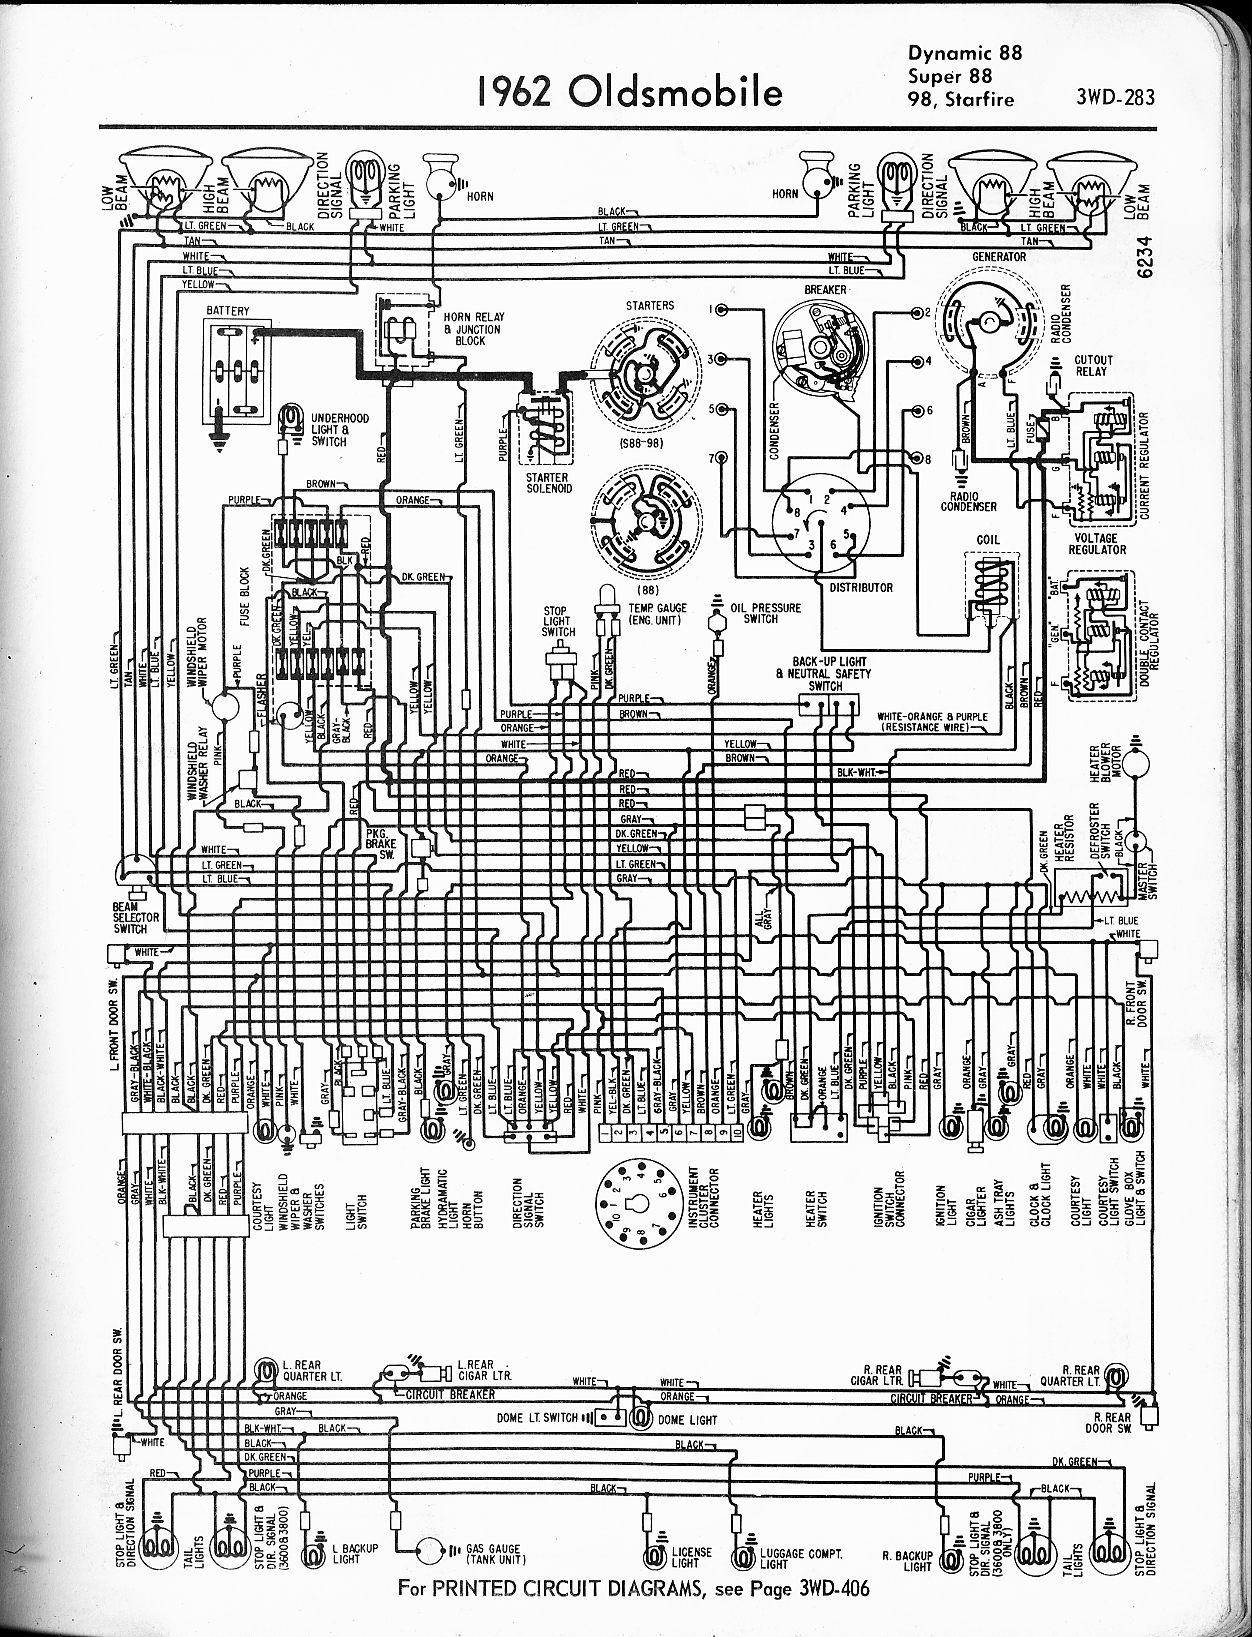 Unique Clarion Drx5675 Wiring Diagram Pdf Picture Collection ...